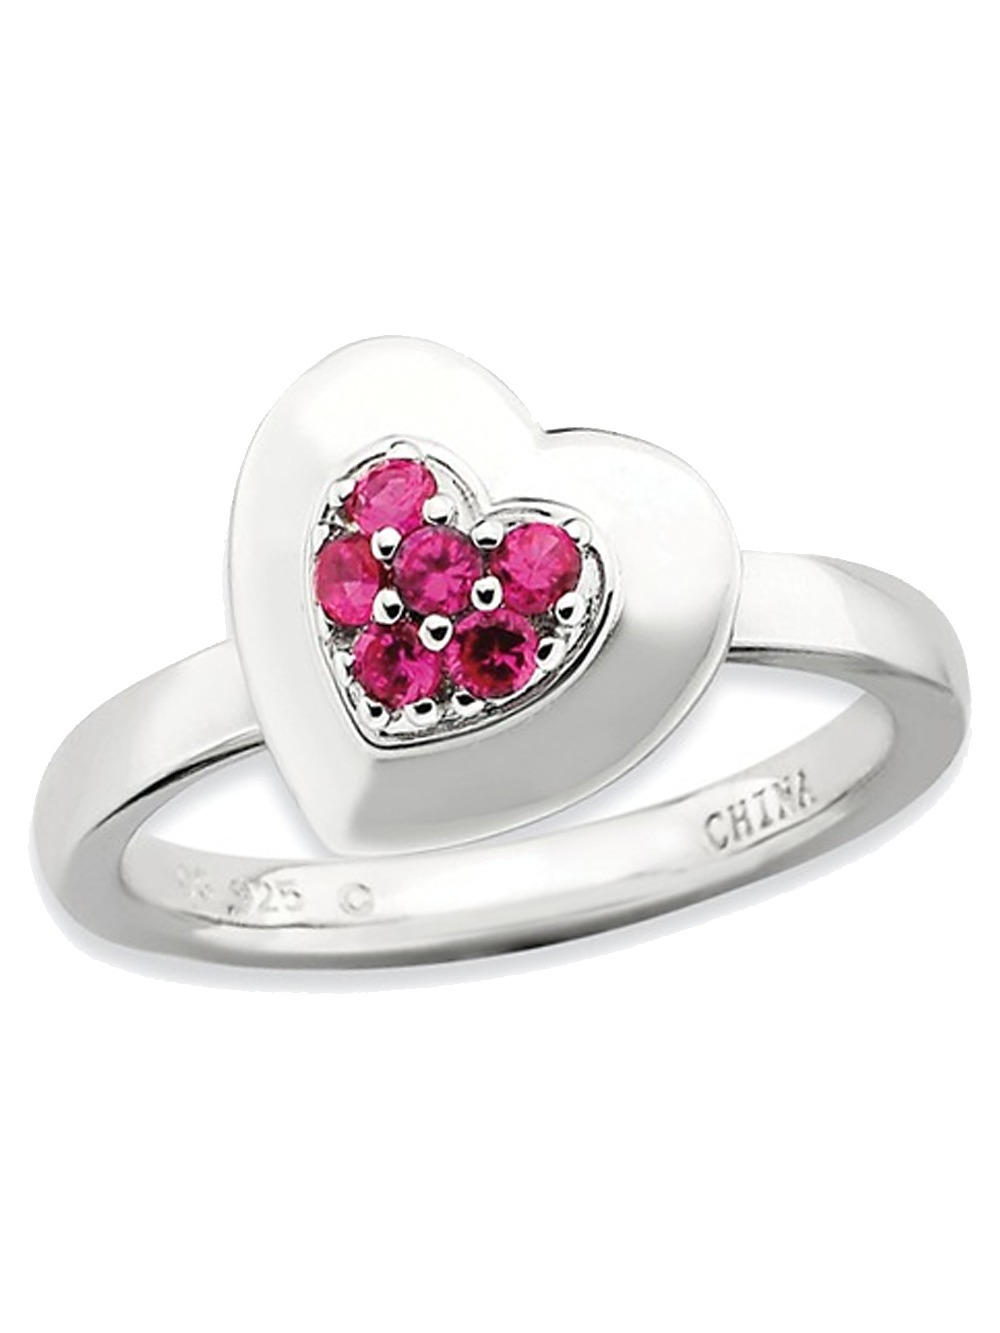 Synthetic Lab Created Ruby Heart Promise Ring in Sterling Silver 1/4 Carat (ctw)